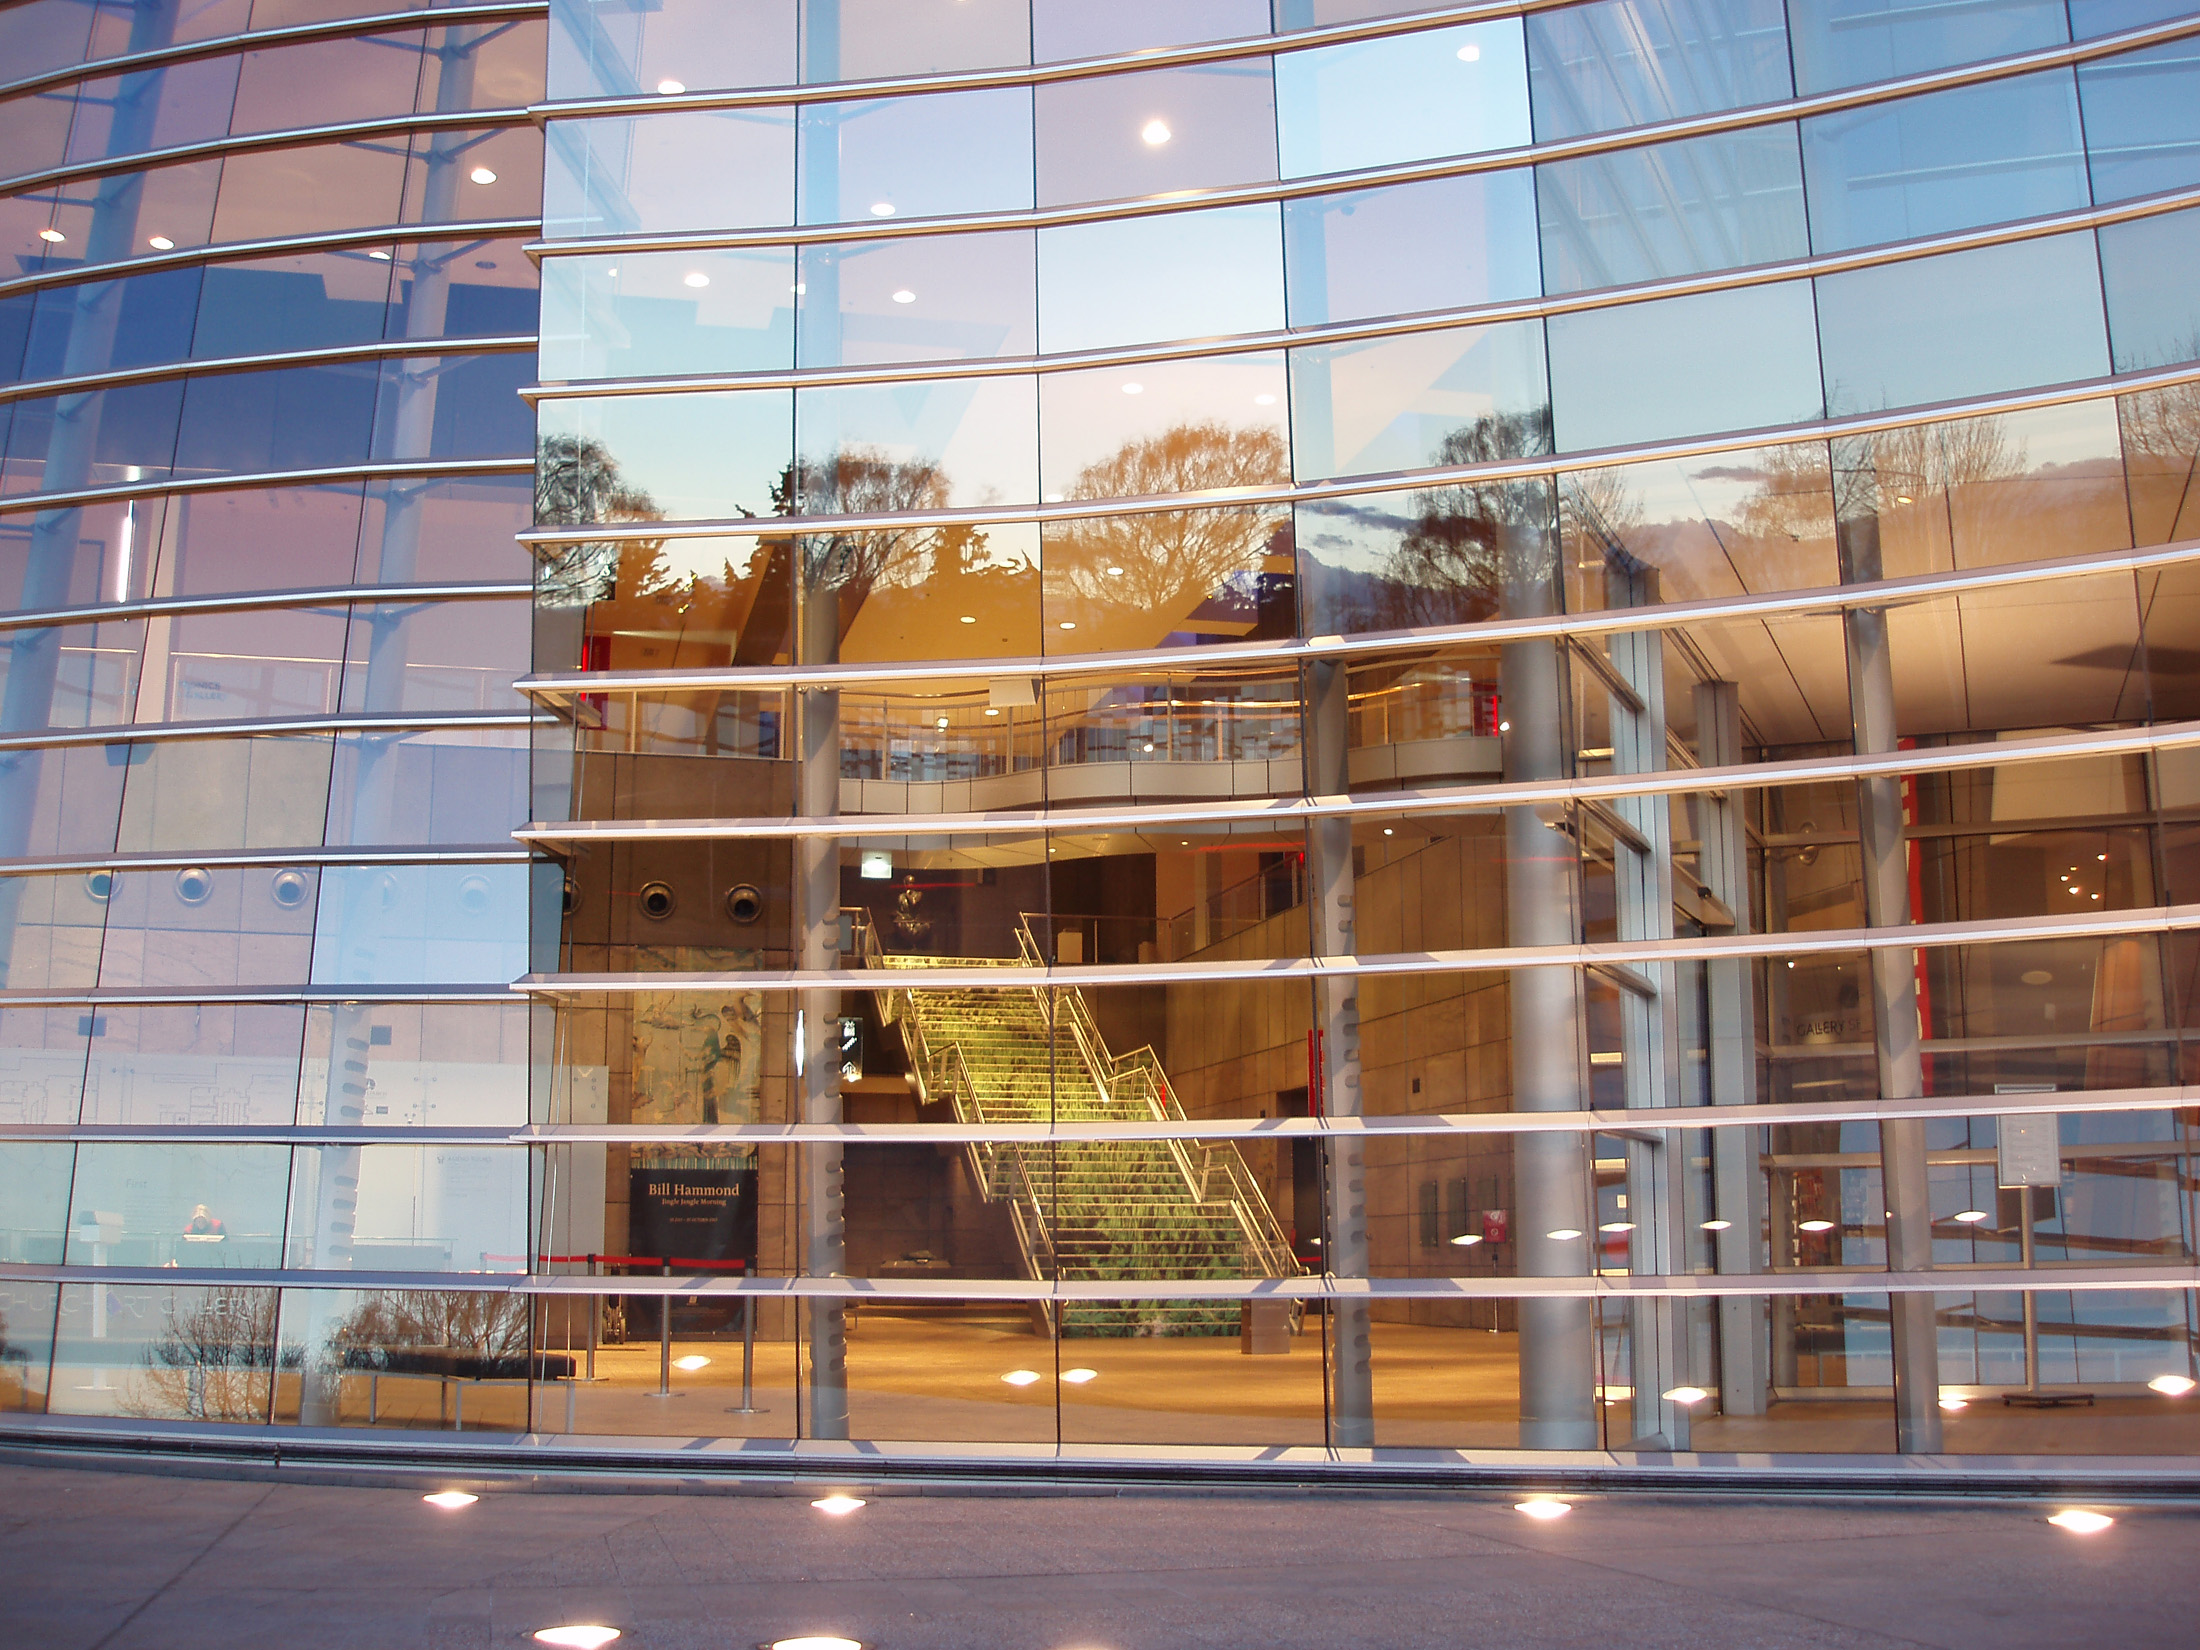 reflective glass font of the christchurch art gallery at sunset